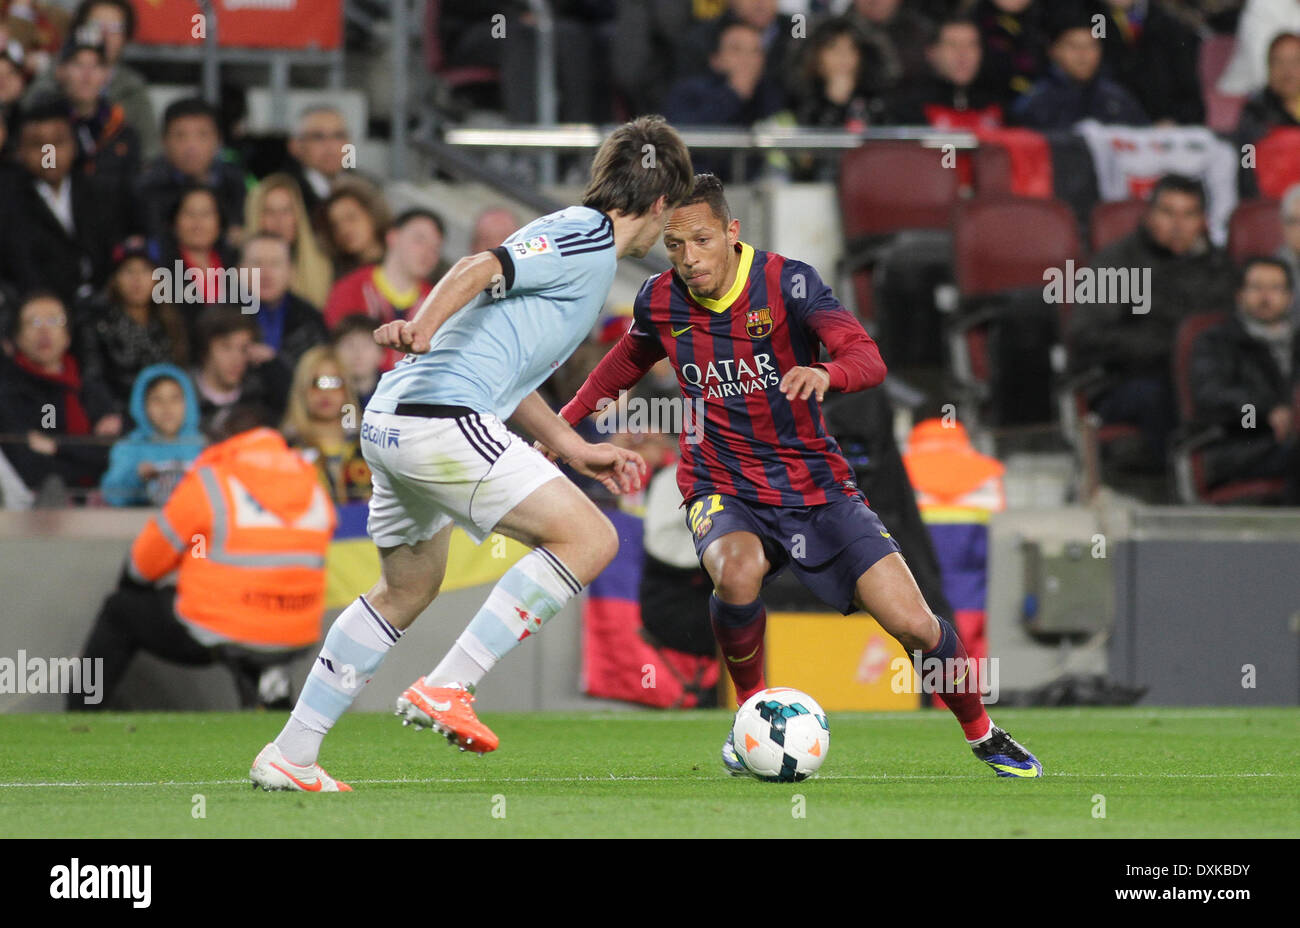 26.03.2014  Barcelona, Spain.  Adriano  in action during the Liga BBVA game between Barcelona and Celta Vigo from Camp Nou - Stock Image